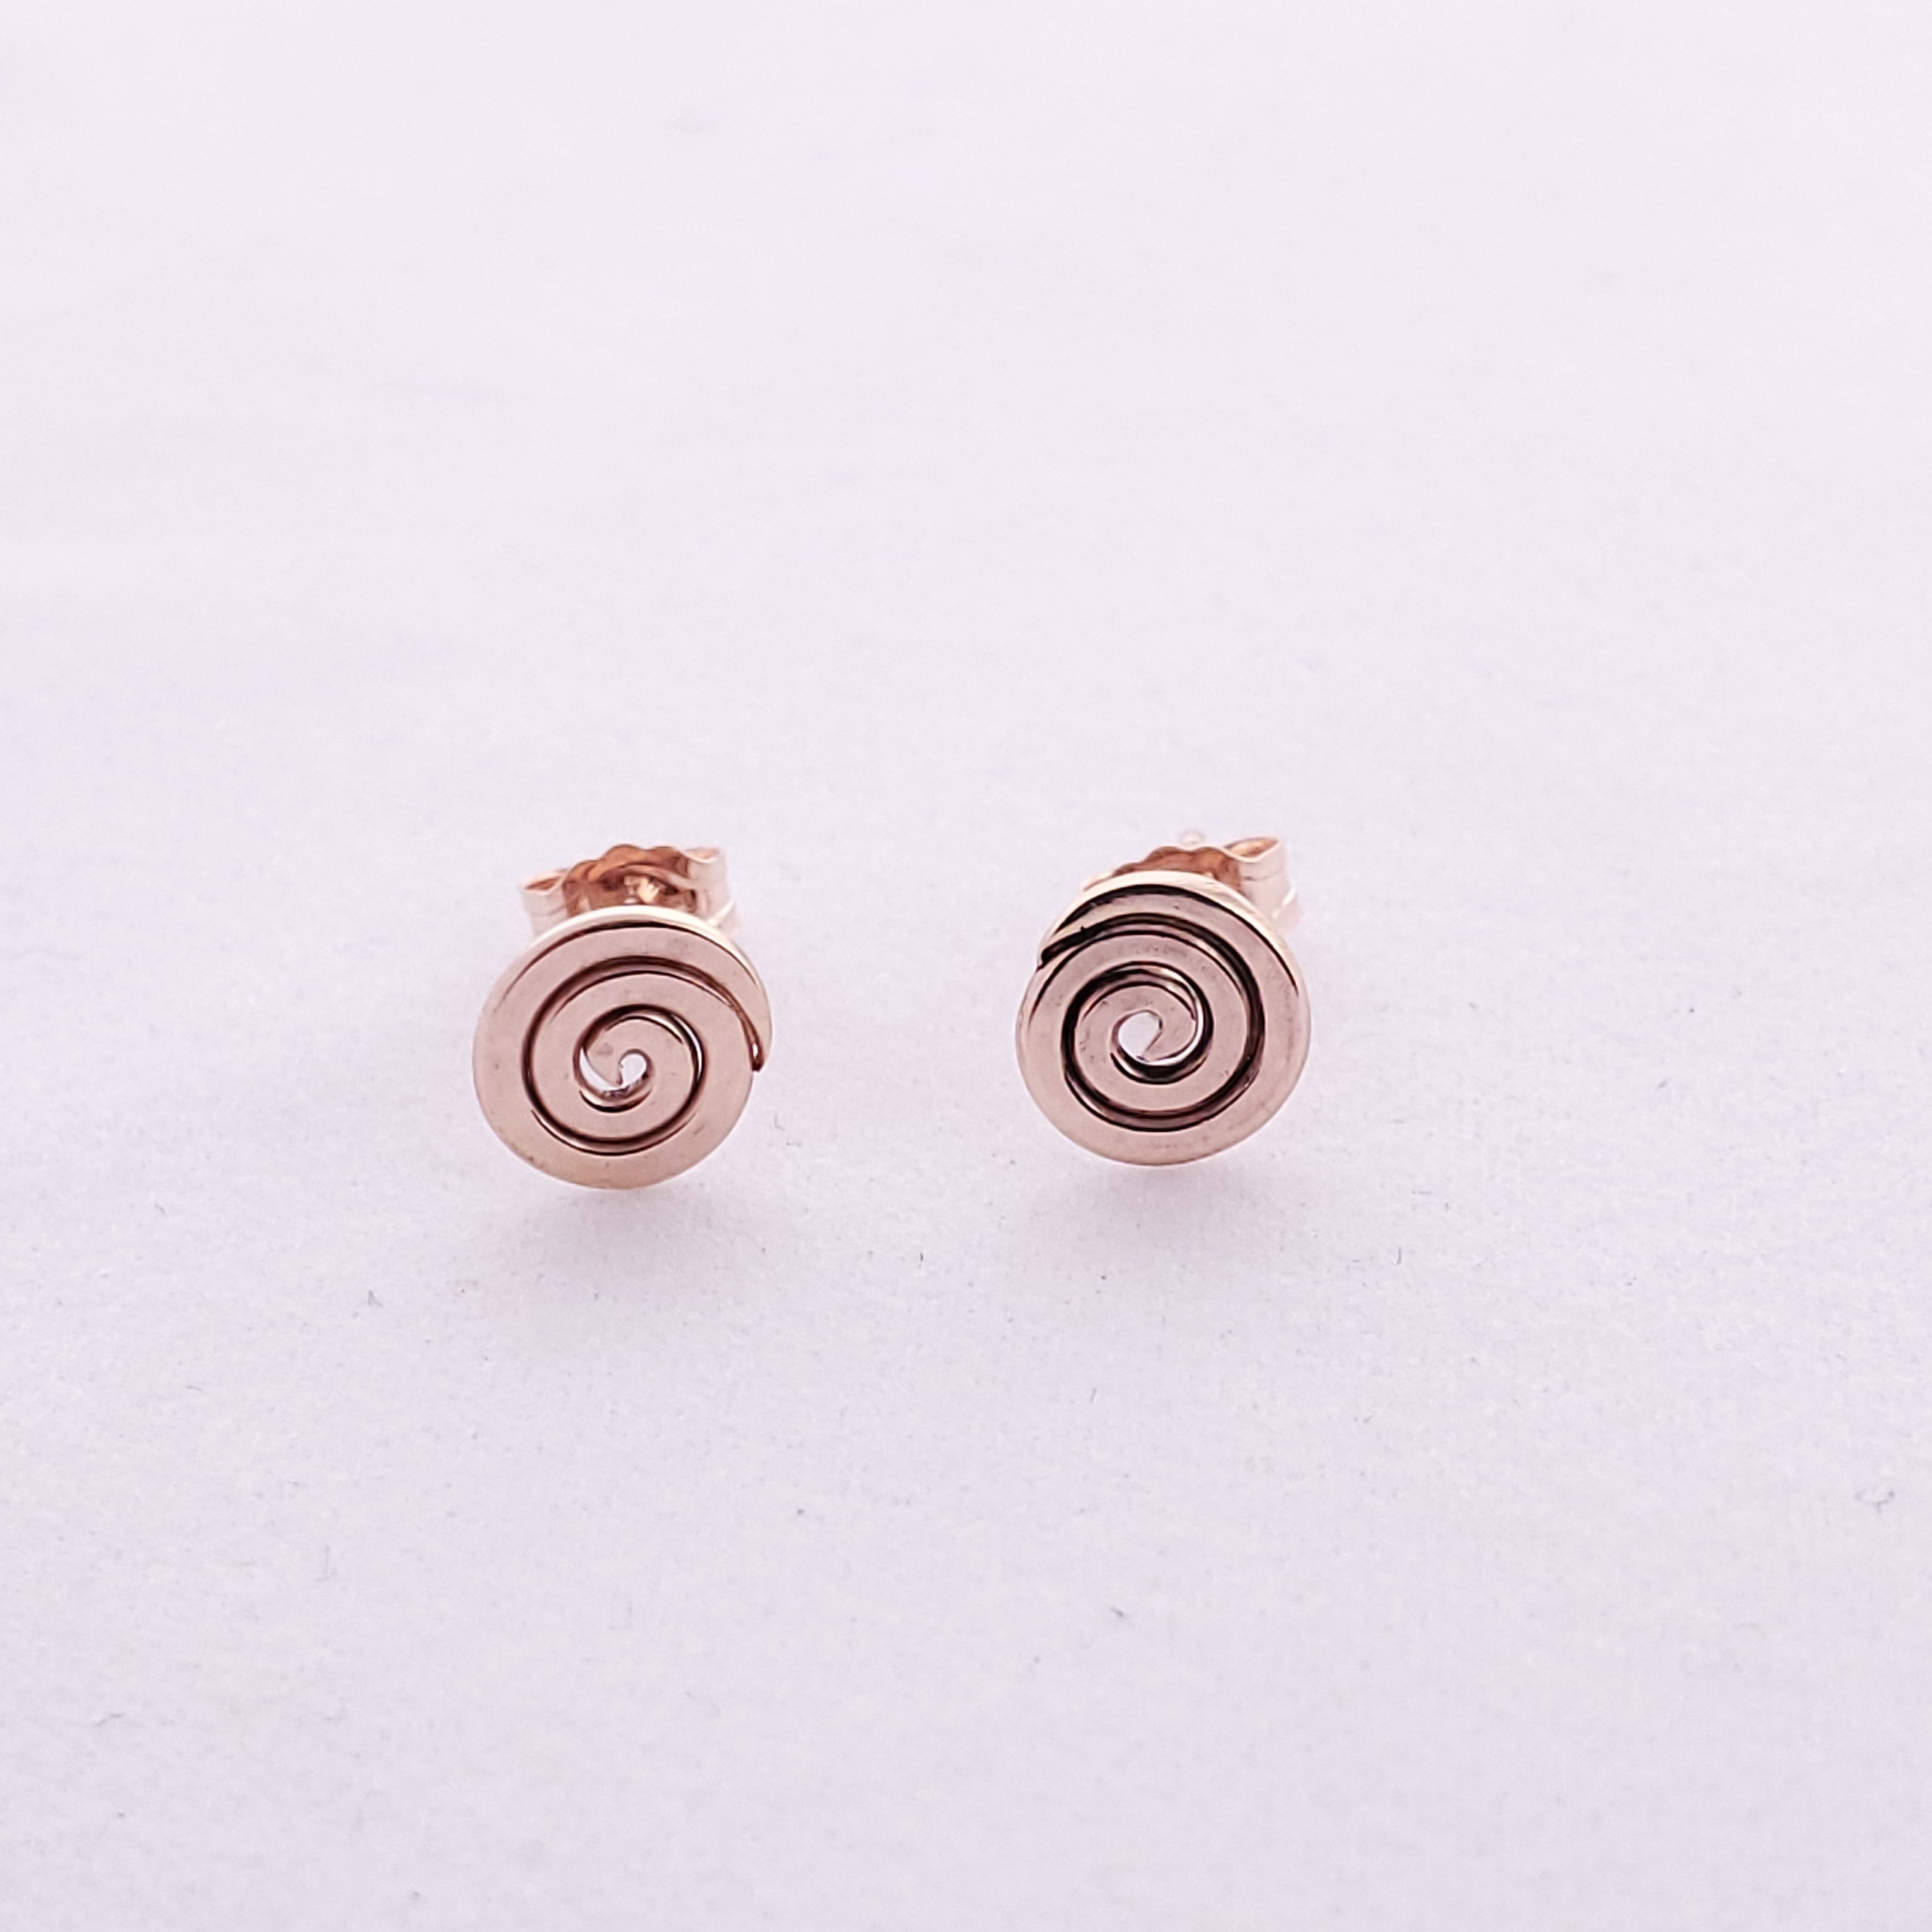 Small spiral post earrings in rose gold-filled